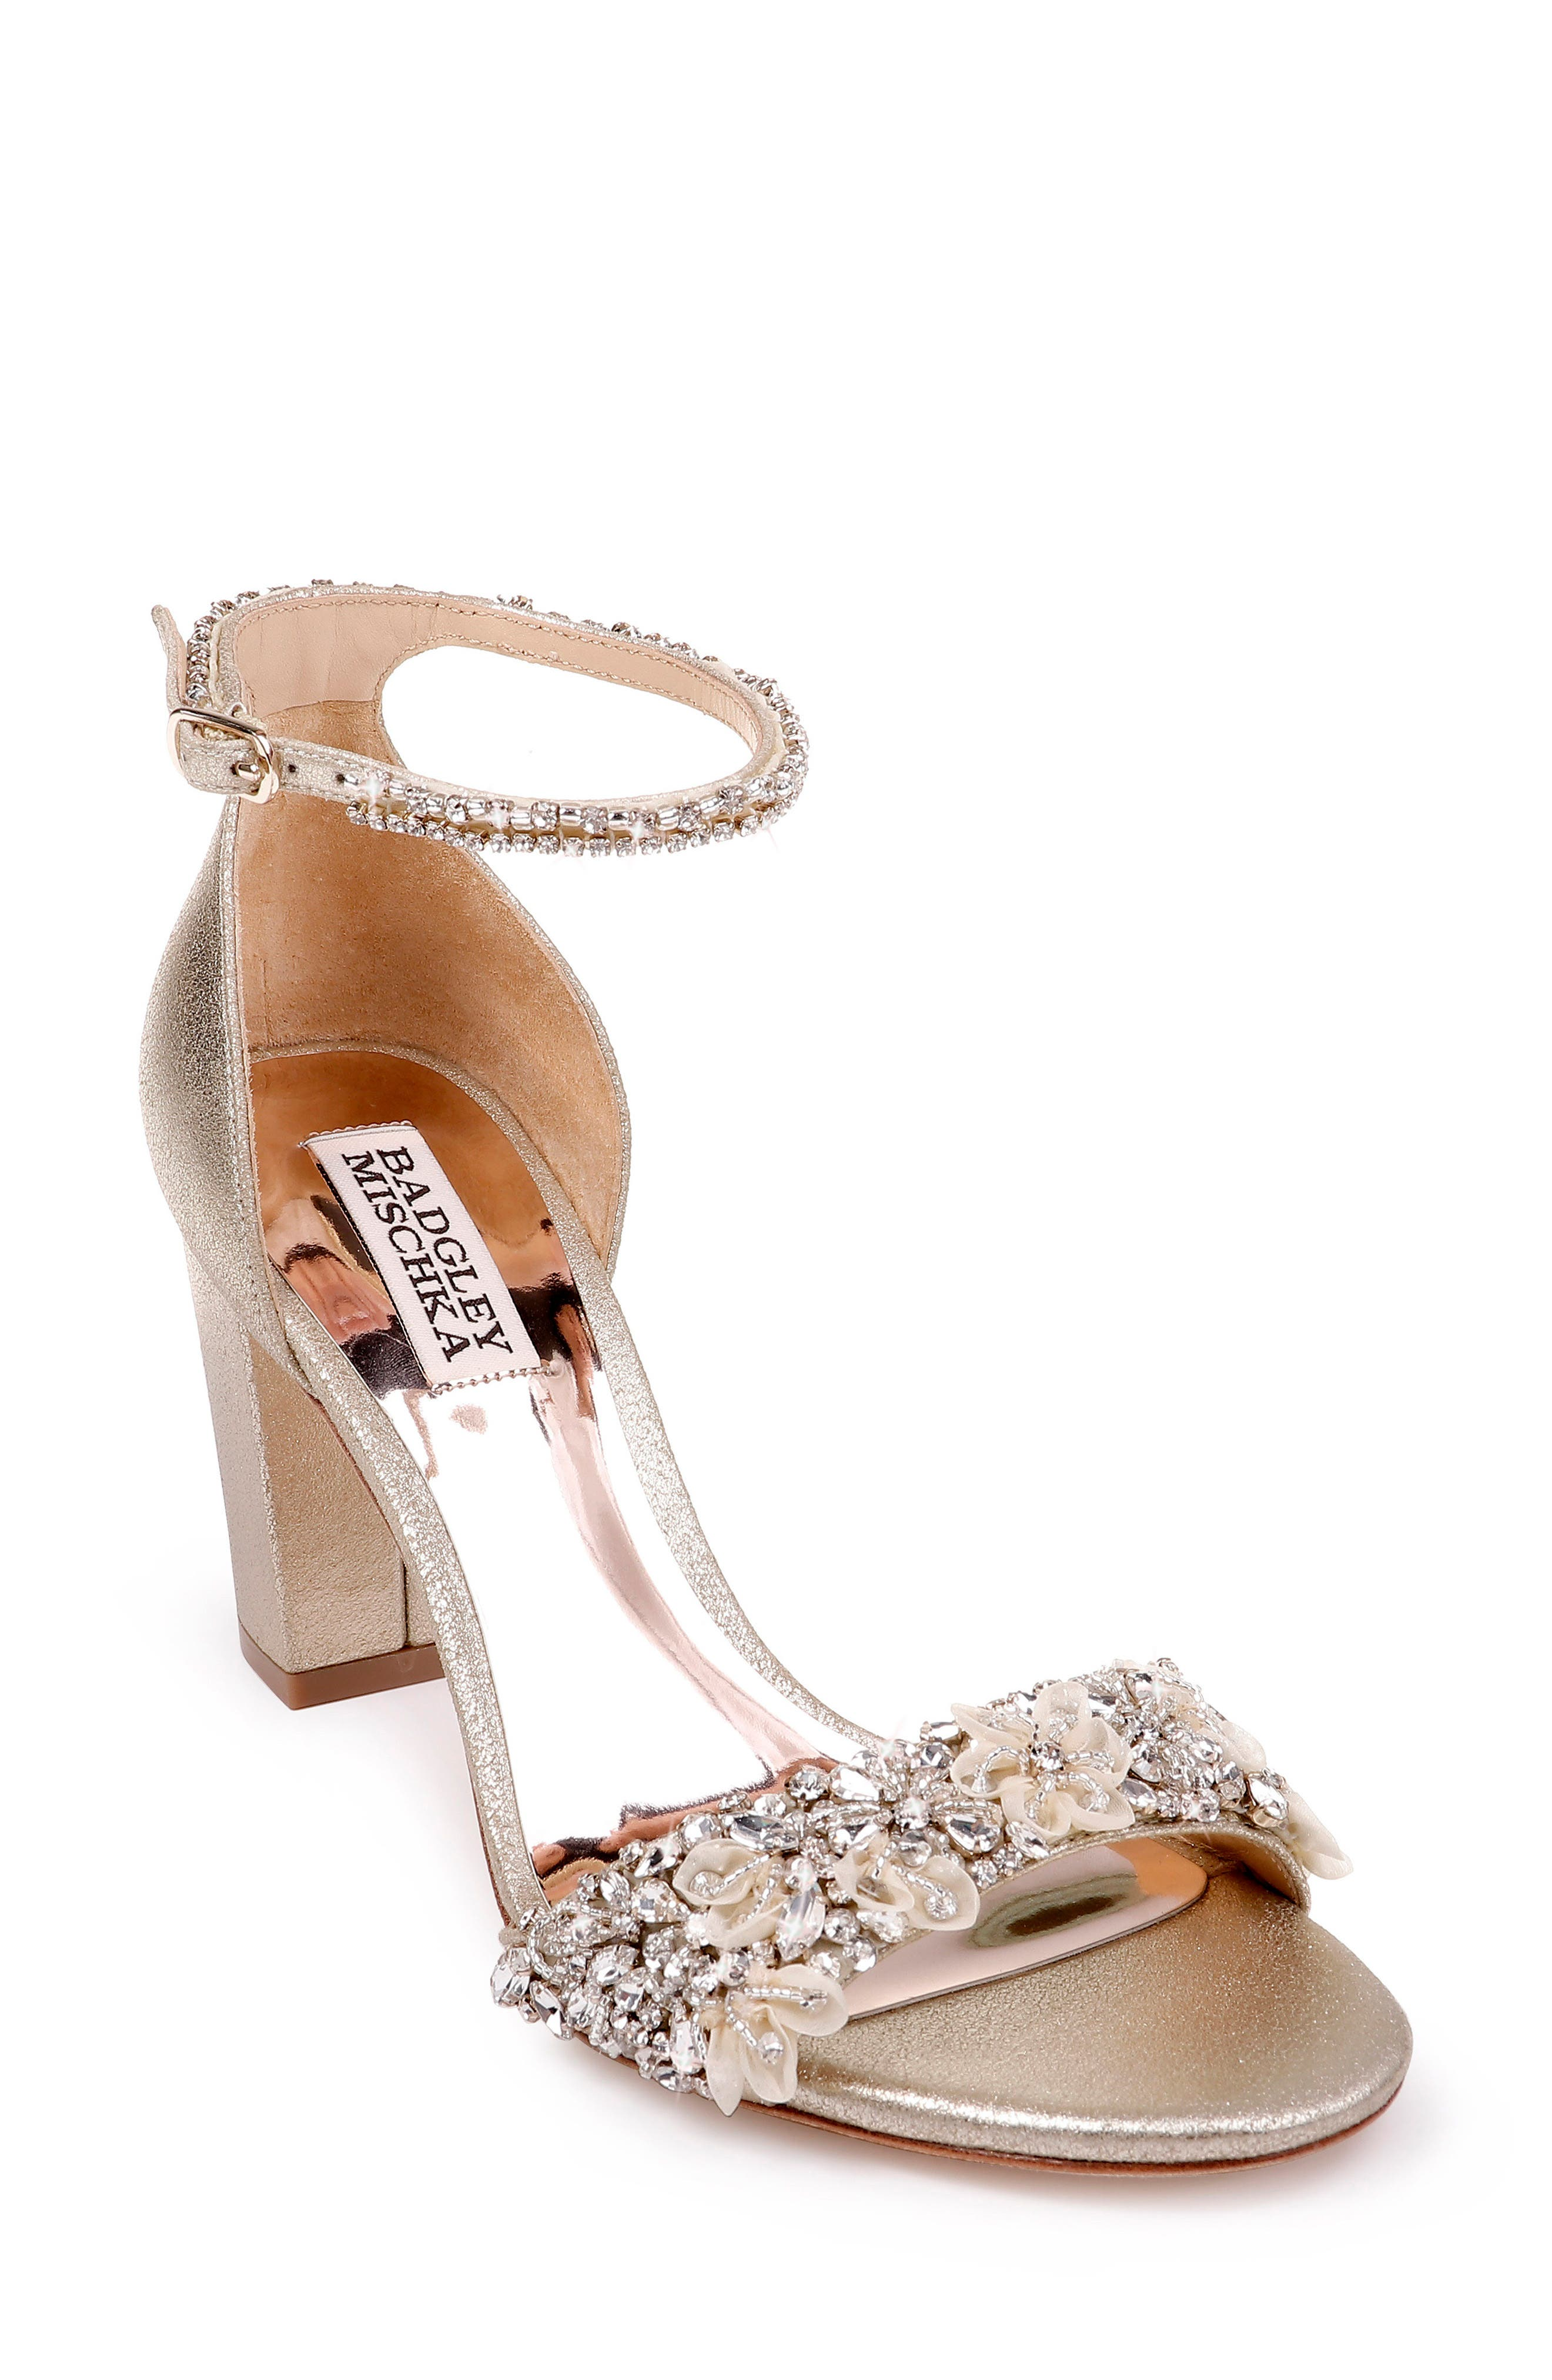 Badgley Mischka Finesse Embellished Ankle Strap Sandal, Metallic